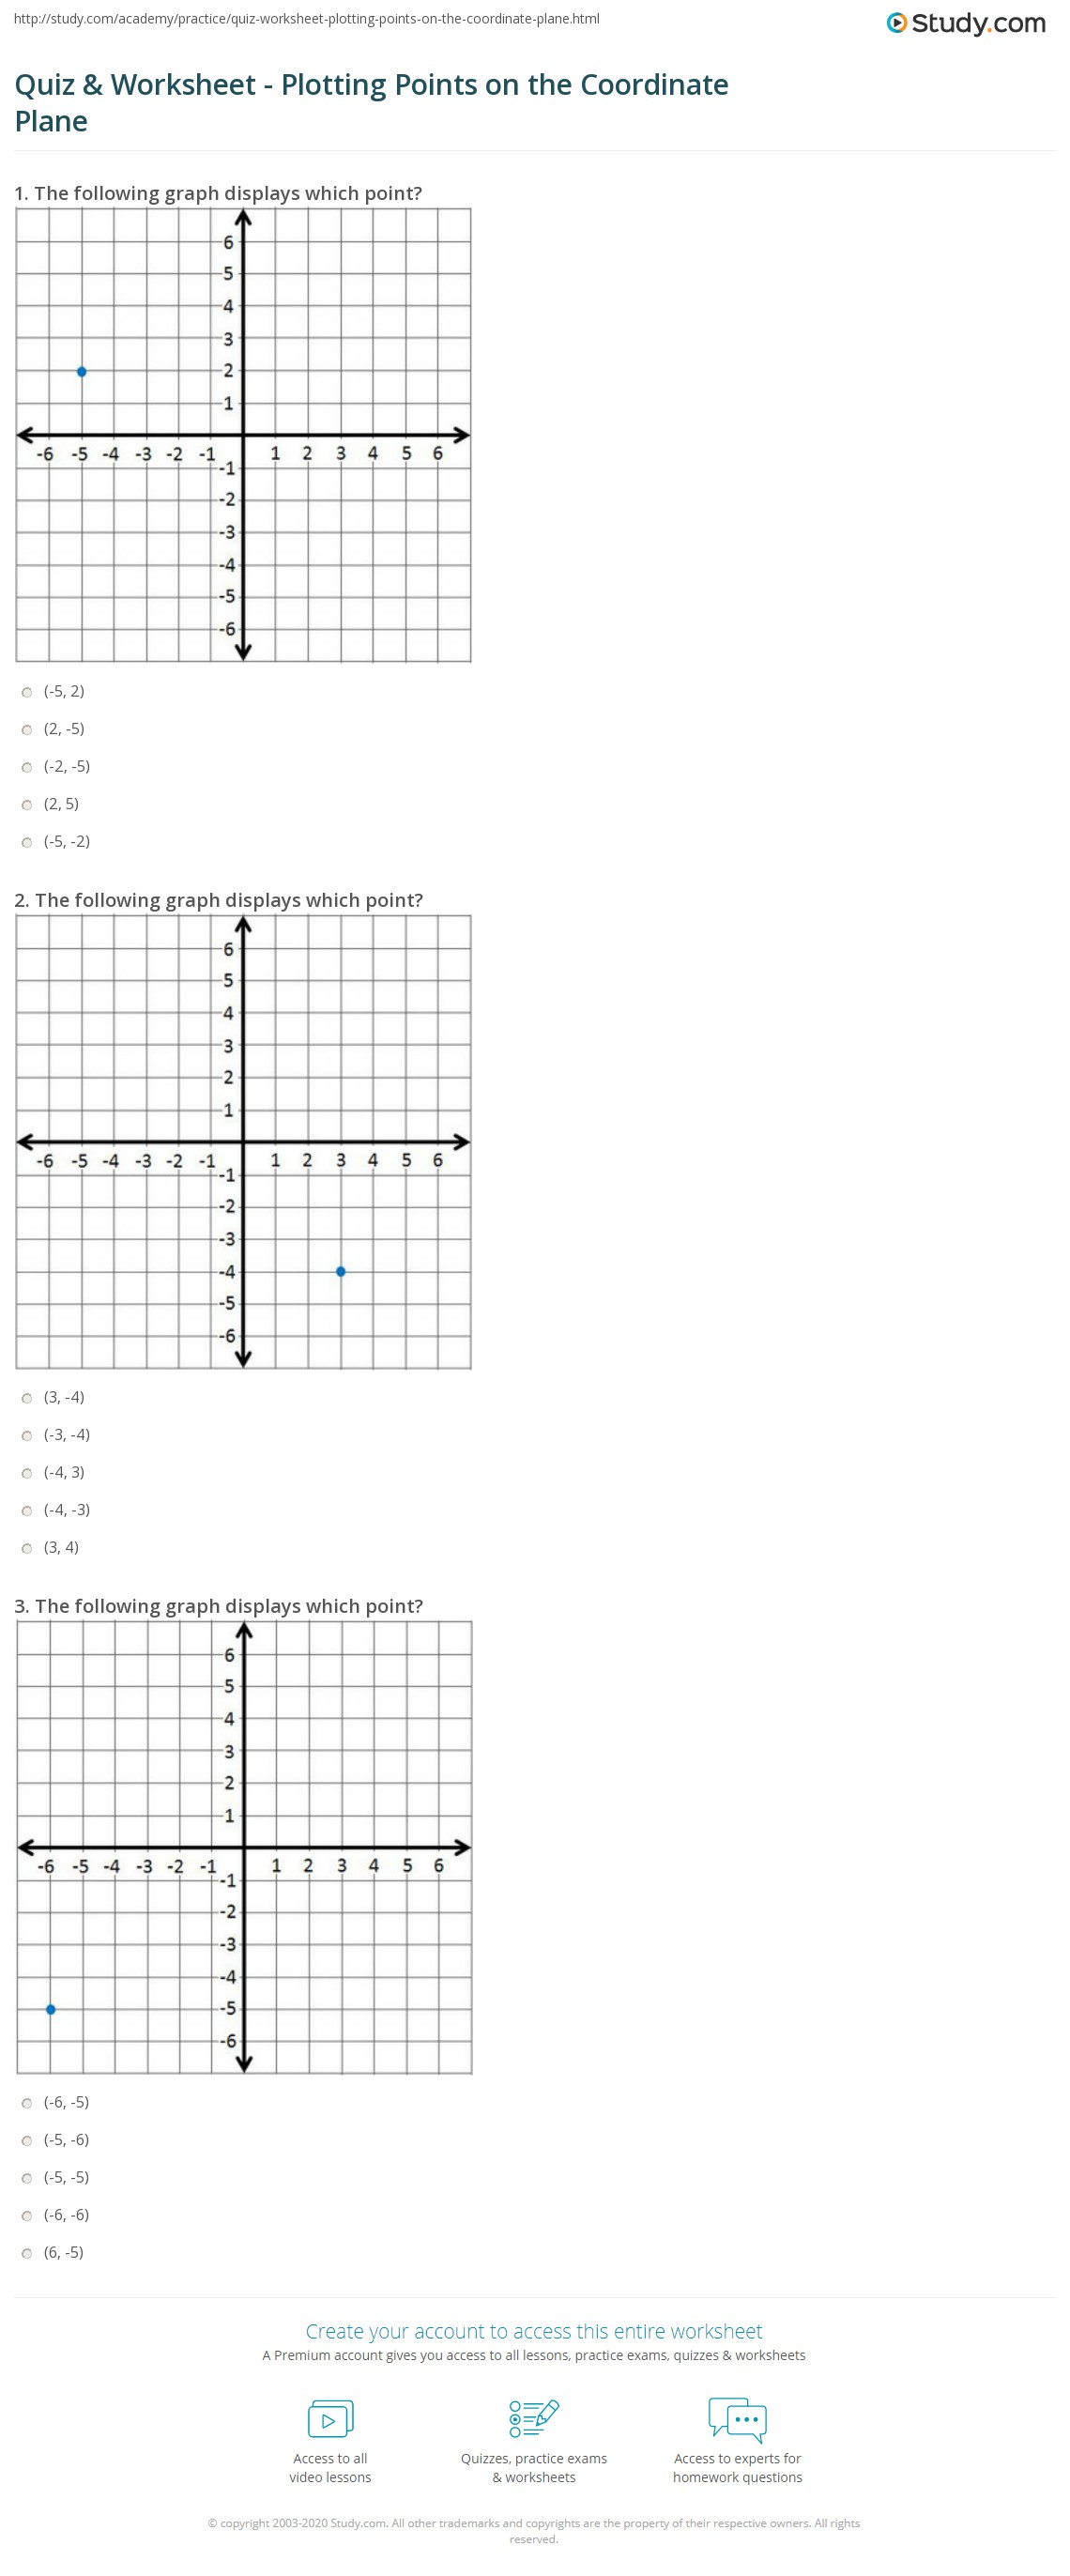 Quiz Worksheet Plotting Points on the Coordinate Plane – Plotting Coordinates Worksheets